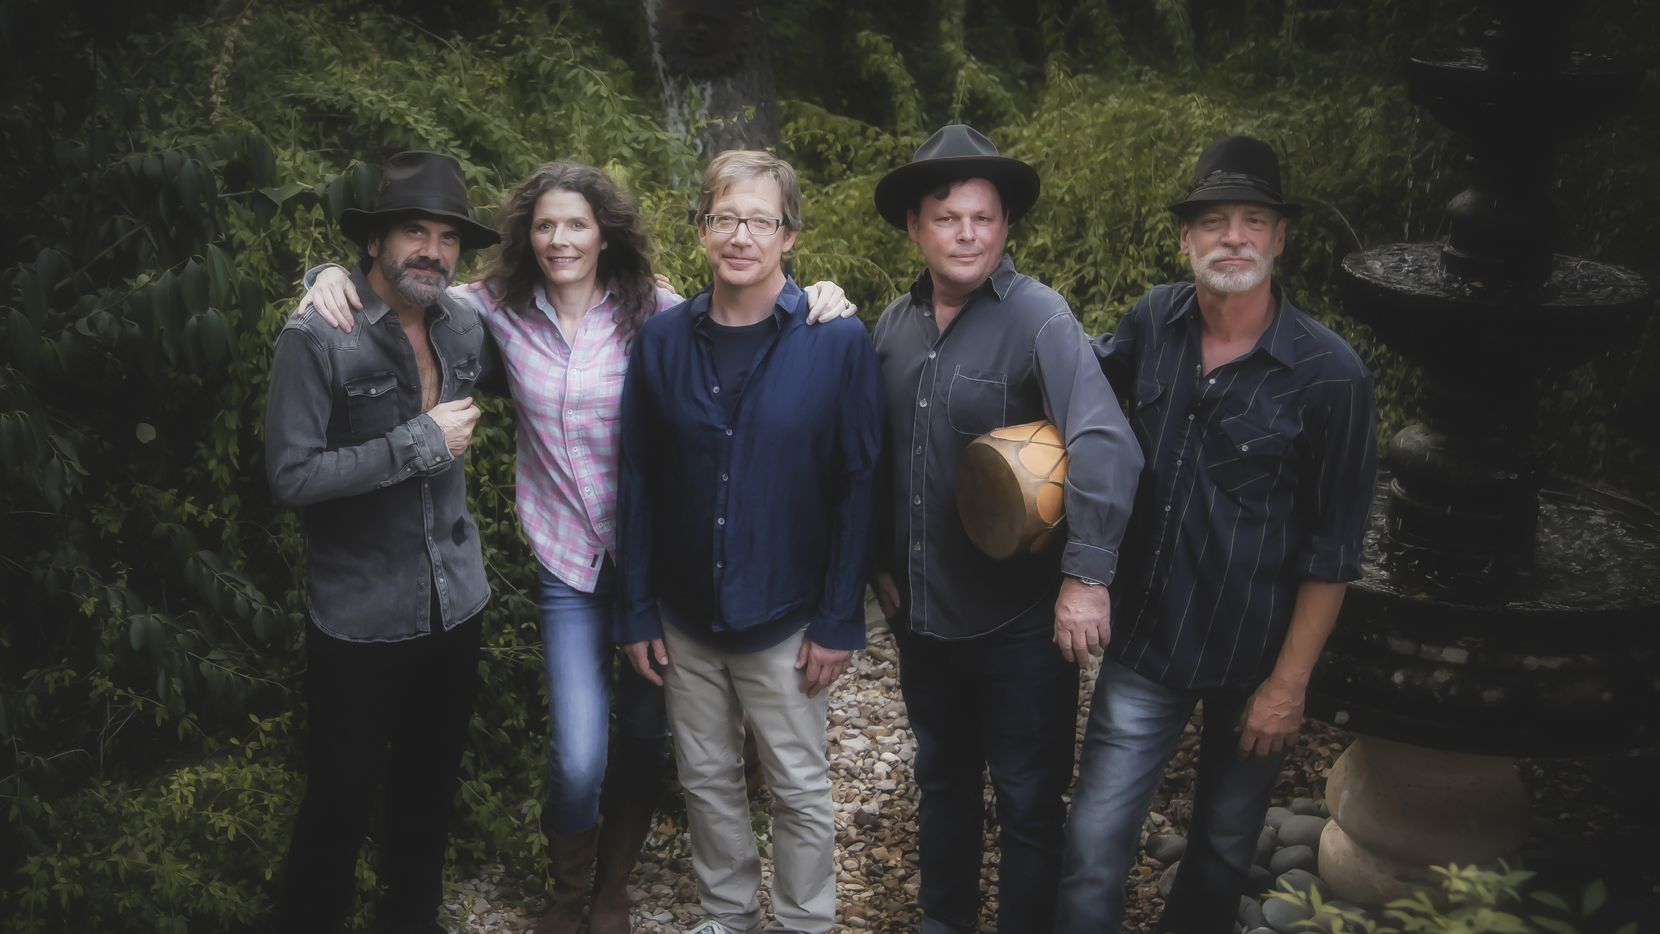 """From left, Kenny Withrow, Edie Brickell, John Bush, Brandon Aly and Brad Houser appear on the upcoming record """"Hunter and the Dog Star"""" from Edie Brickell and New Bohemians."""